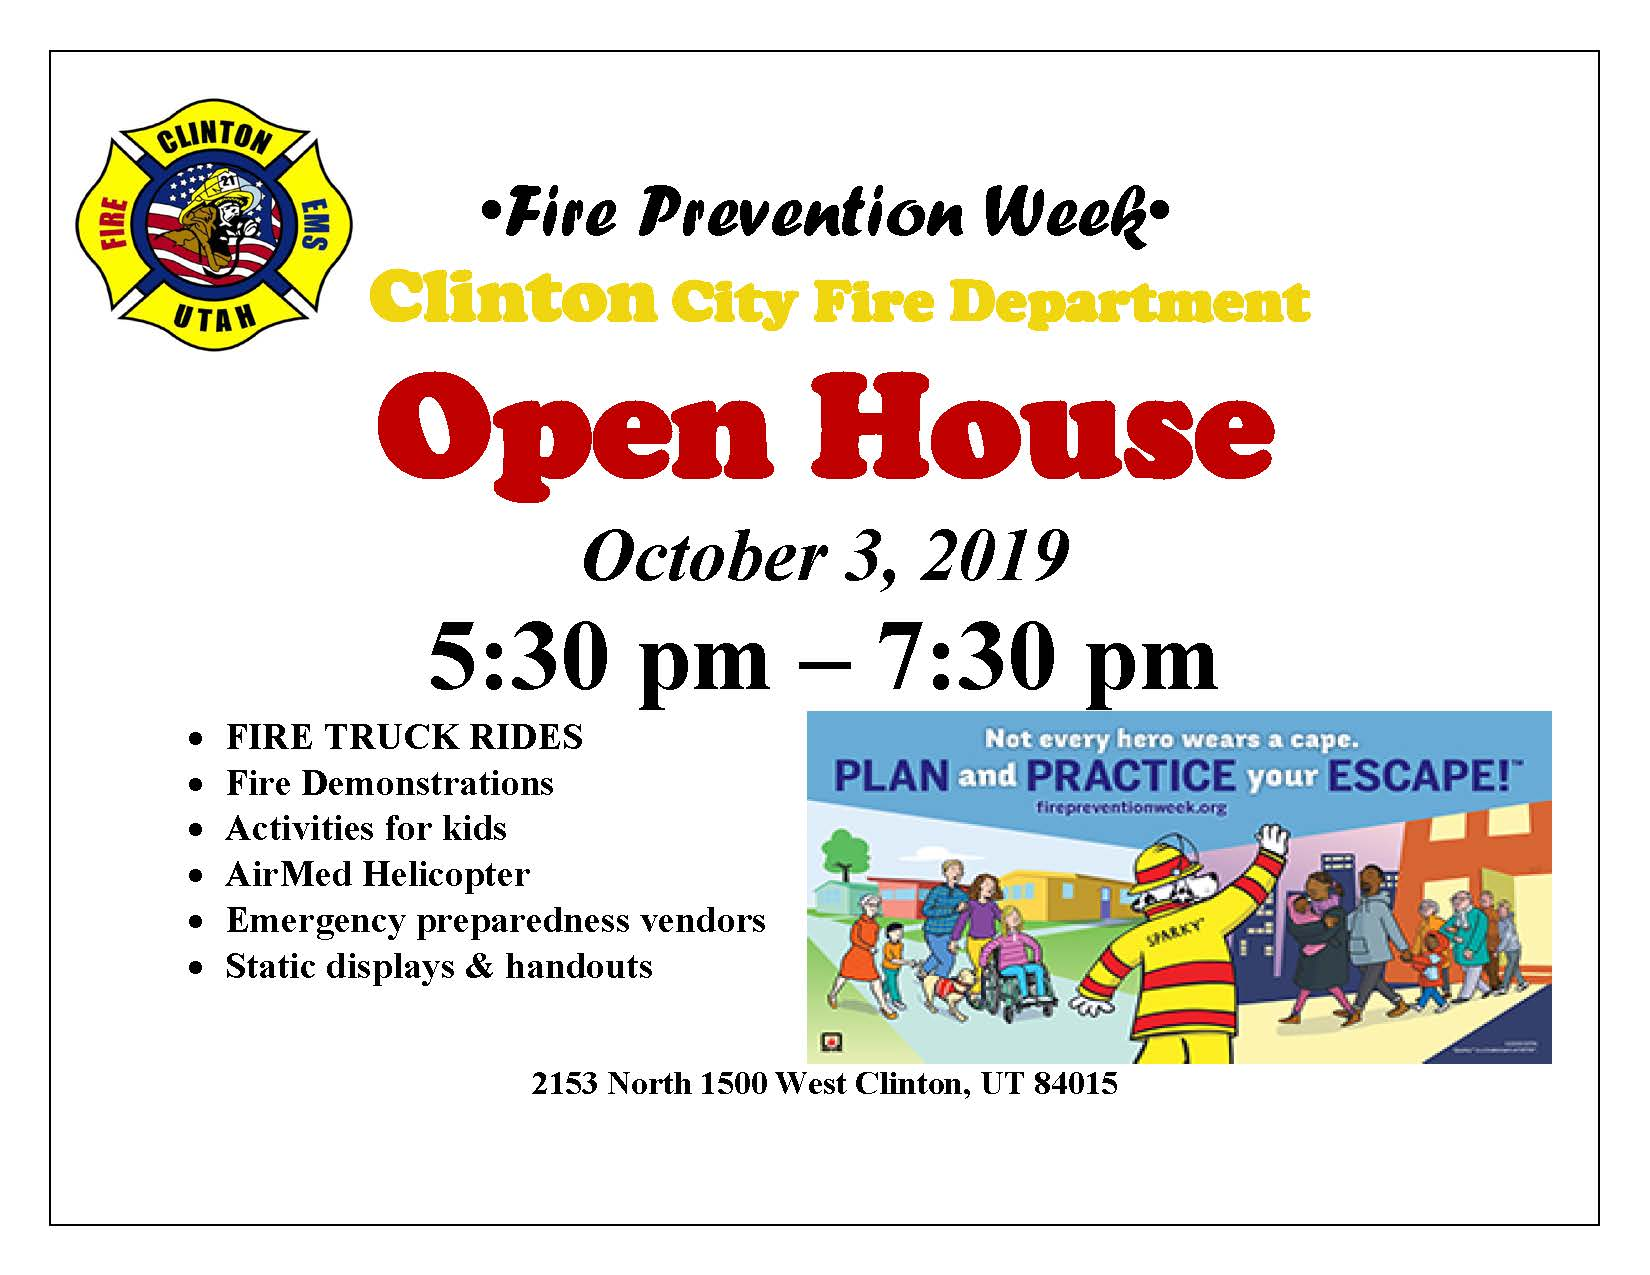 Fire Prevention Week flyer 2019